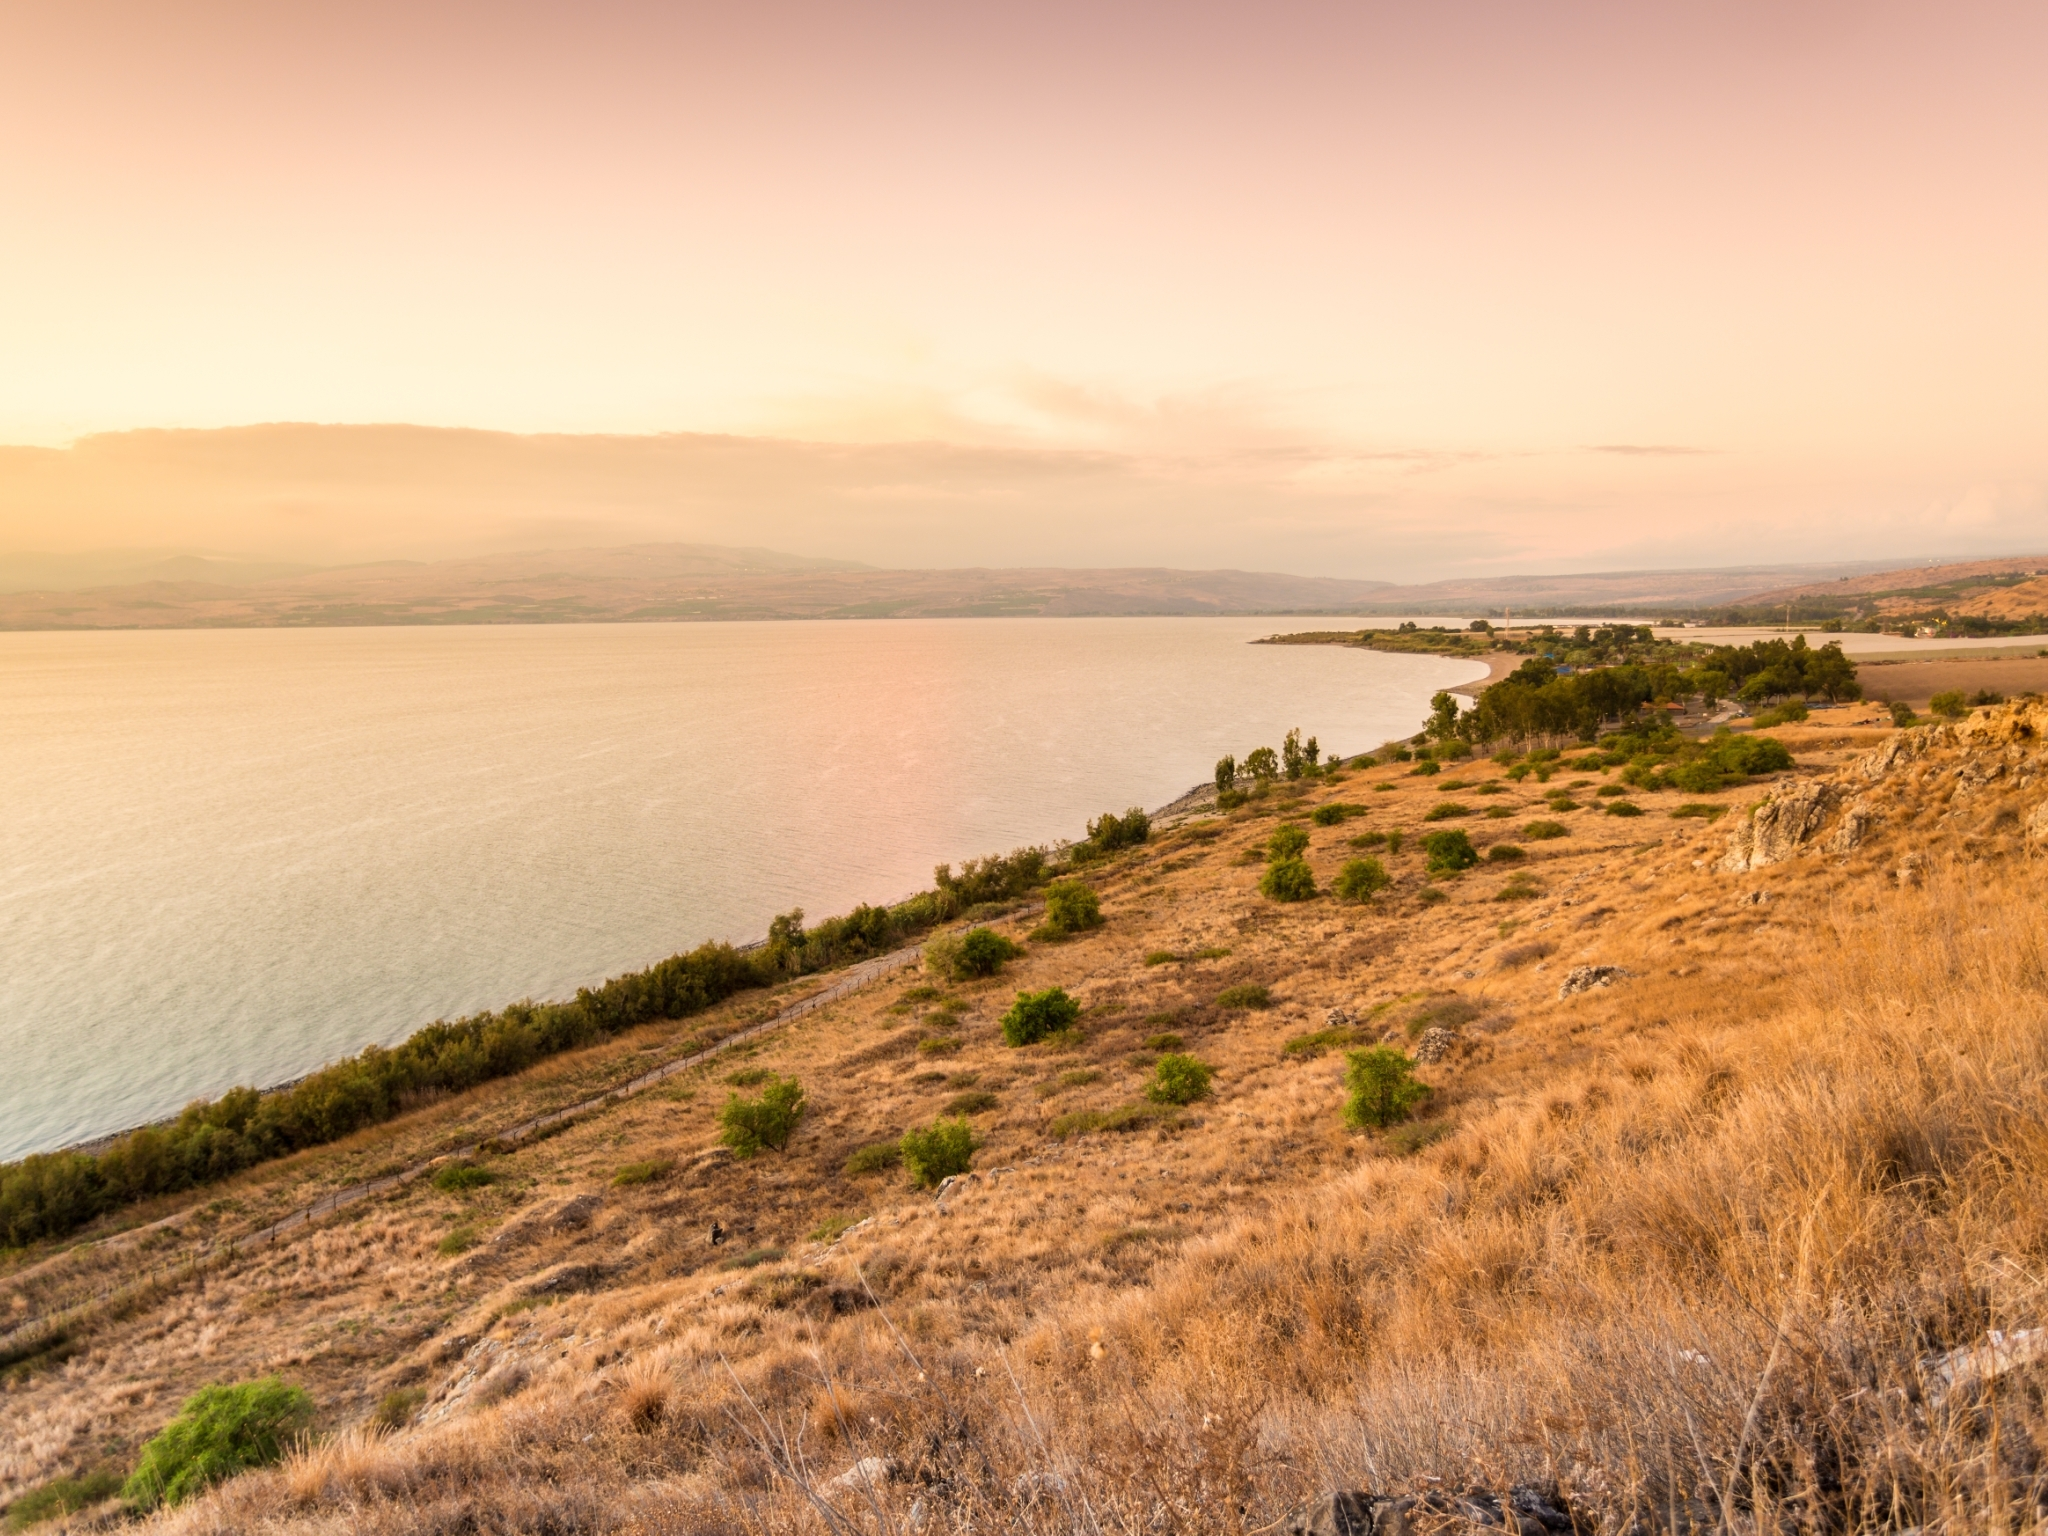 Sea of Galilee beaches and sites   from Tiberias to the Kinneret 2048x1536